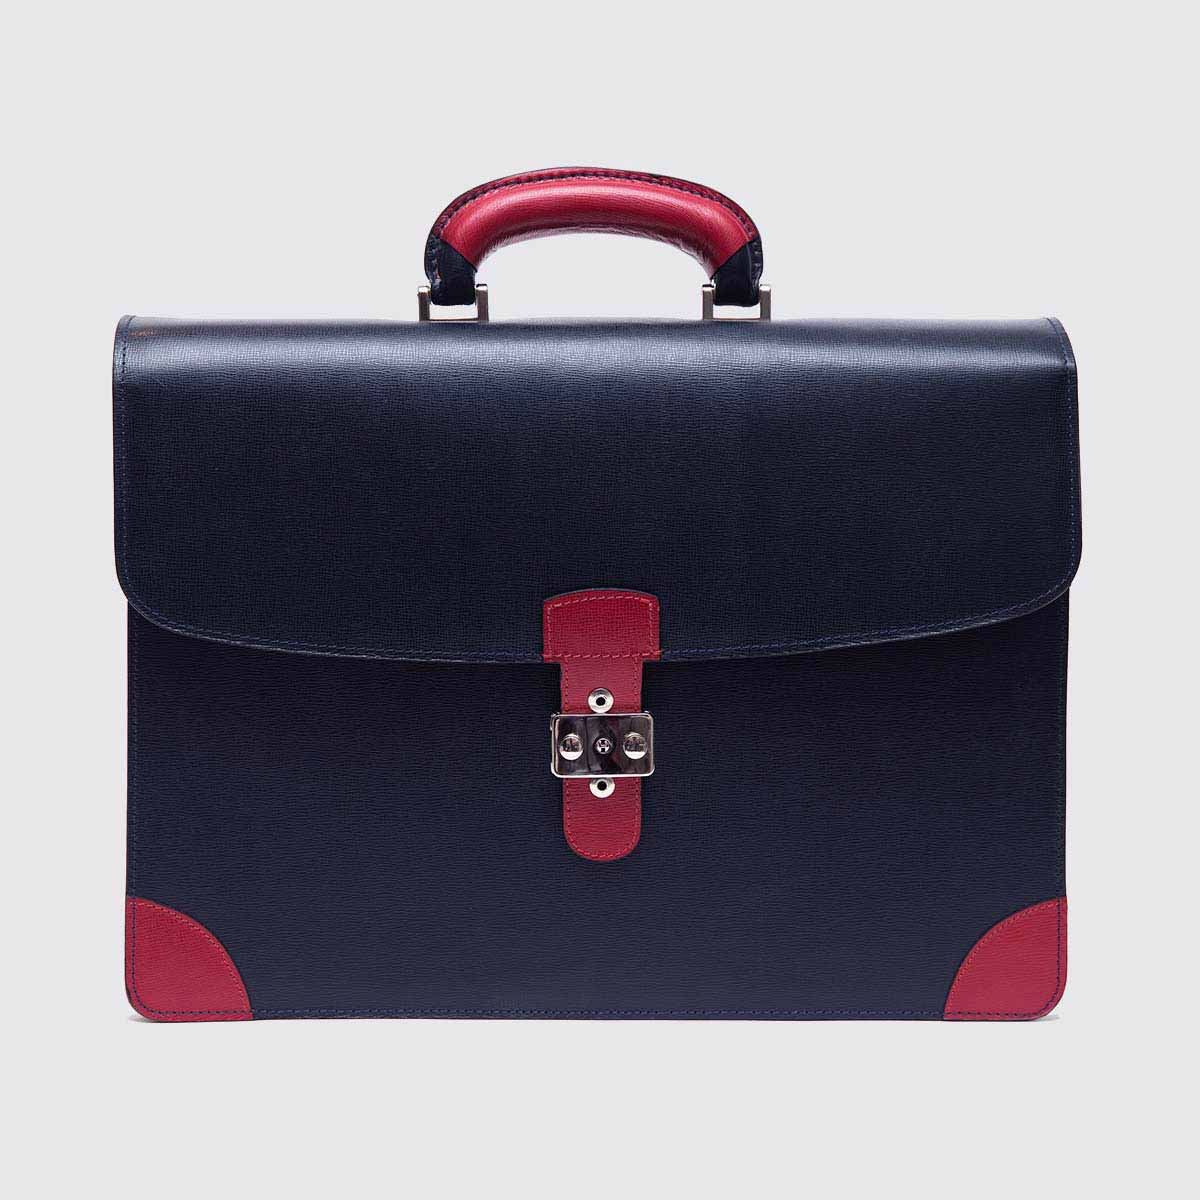 Rigid briefcase in blue navy calf leather